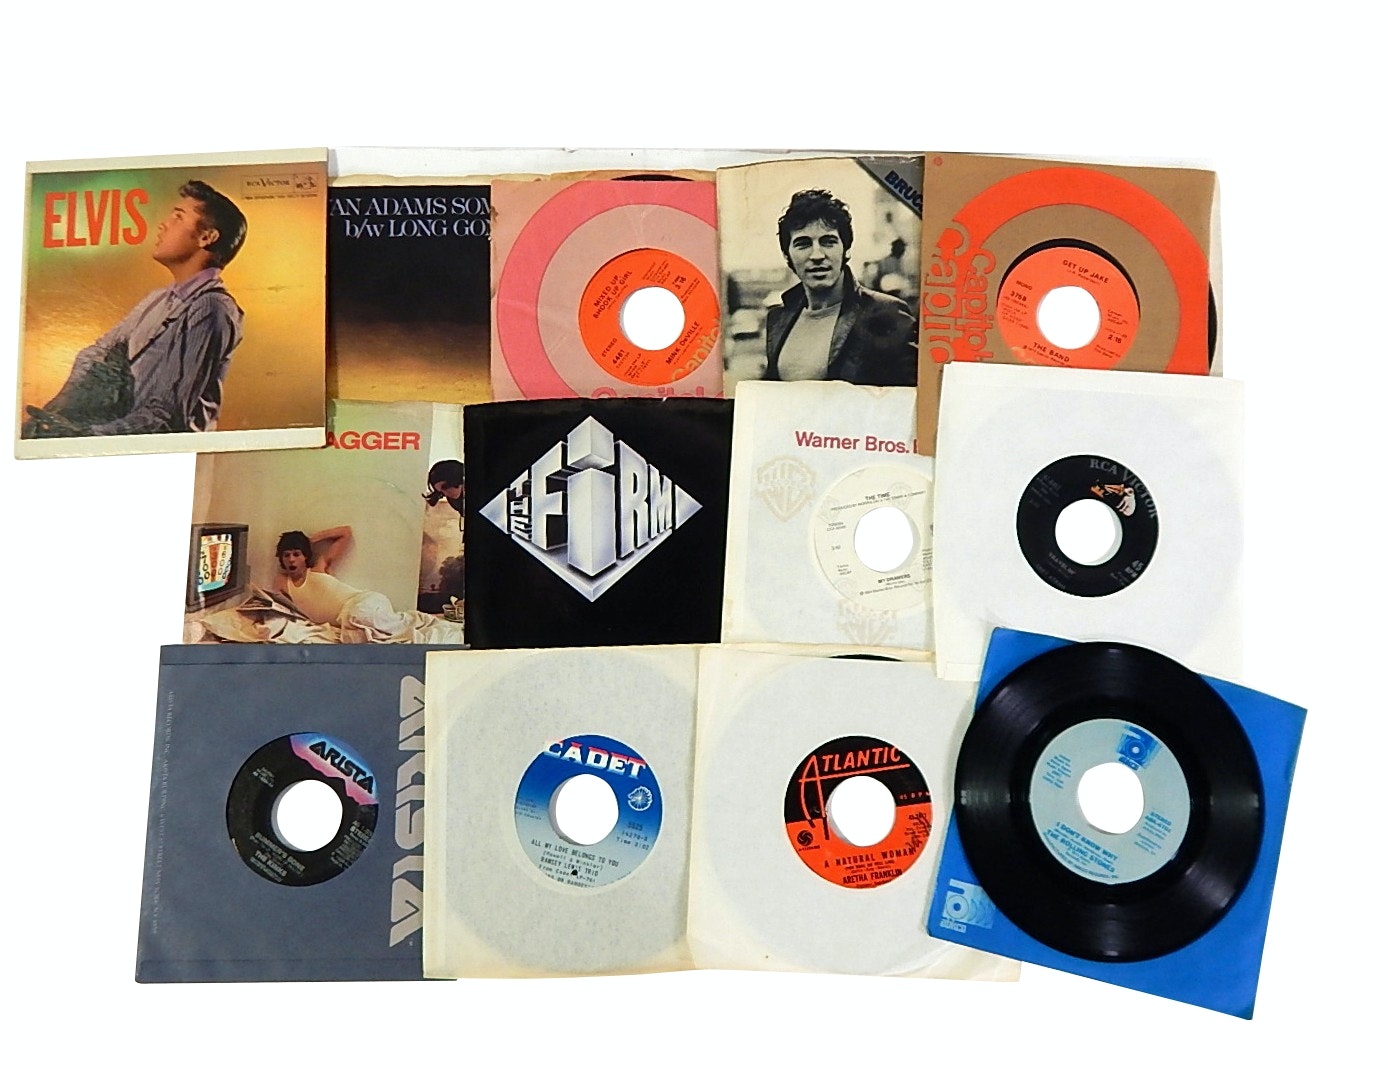 45 RPM Records with Bruce Springsteen, Aretha Franklin, The Rolling Stones